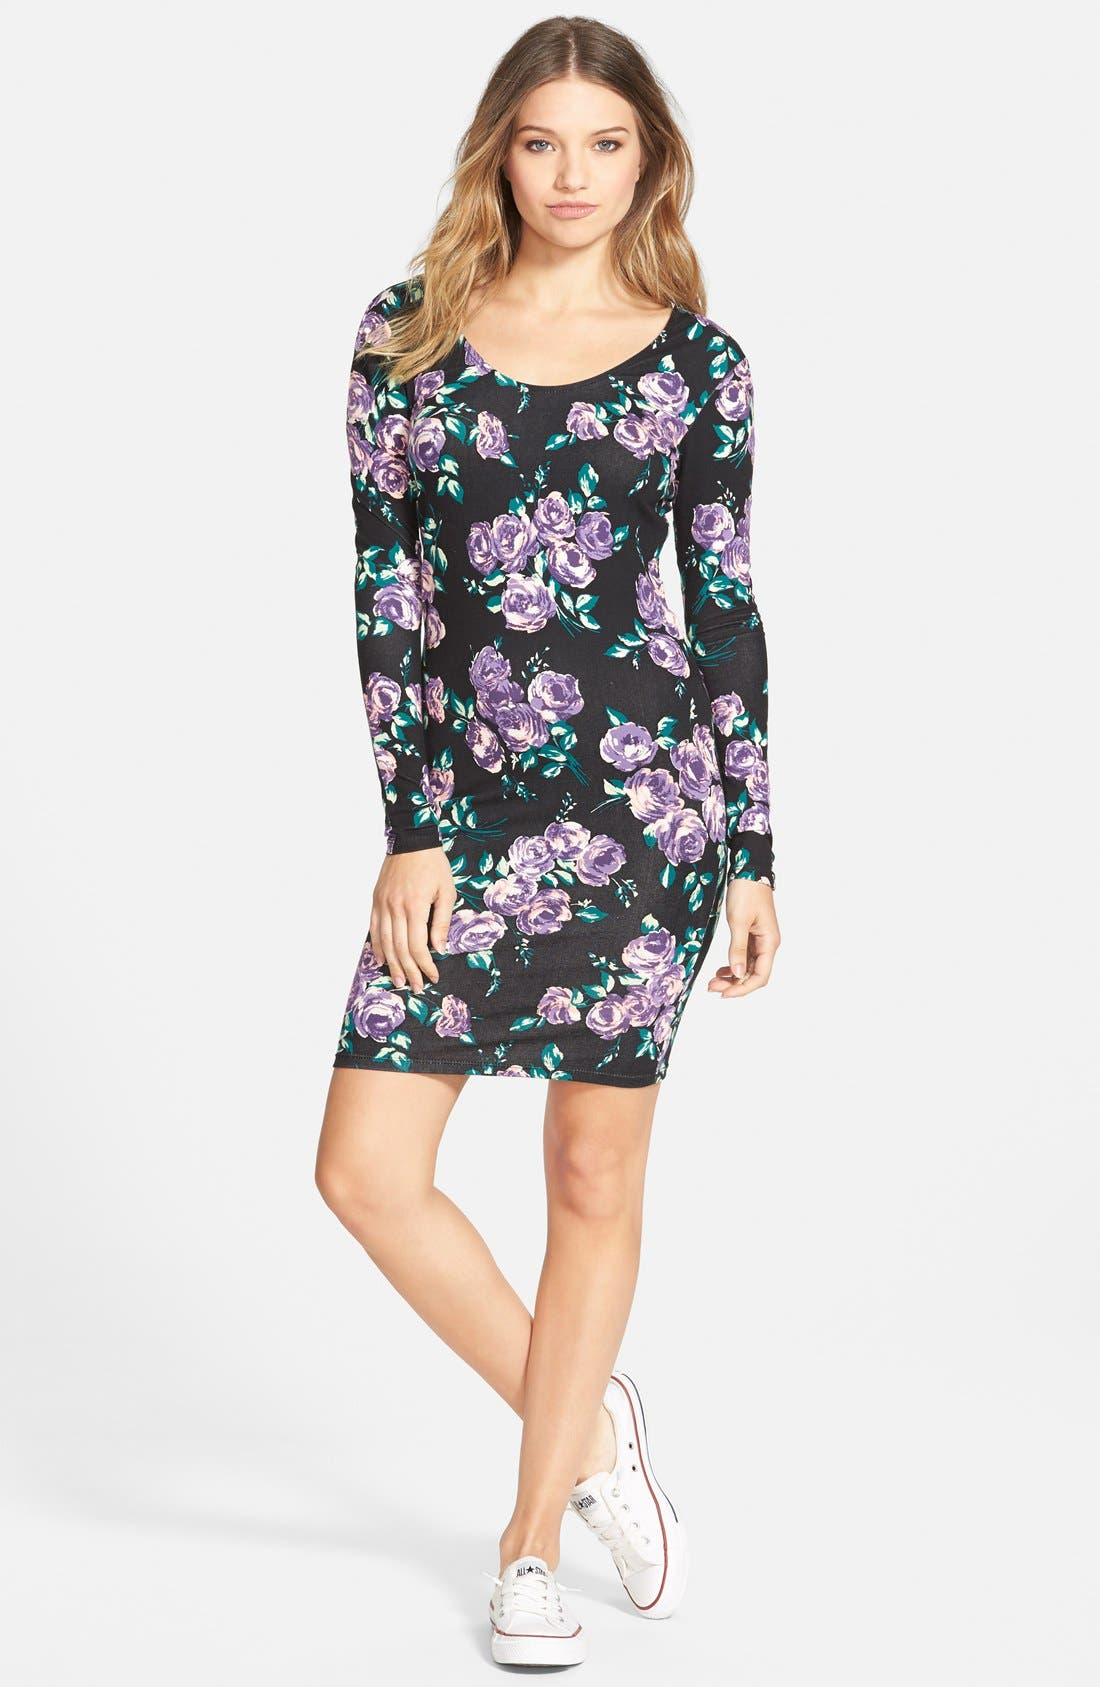 VOLCOM 'Anytime' Floral Print Body-Con Dress, Main, color, 500